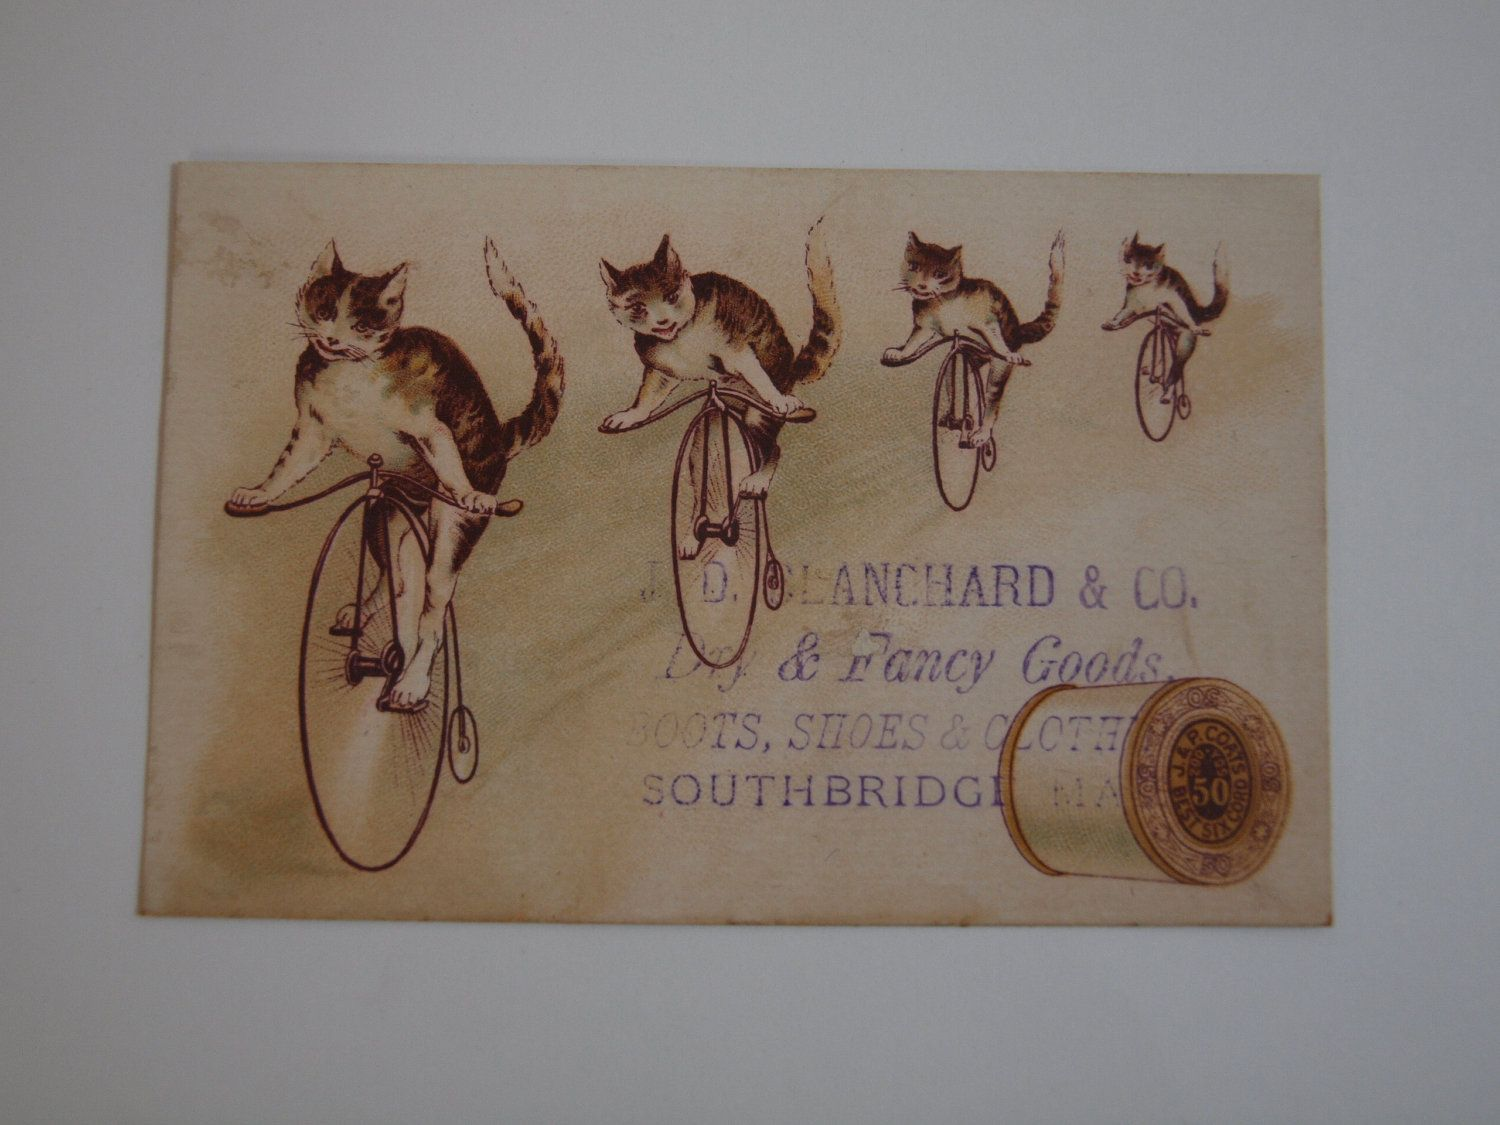 Enthralling Victorian Trading Google Search Vintage Bicycle Cats Victorian Ephemera Advertising Trading Victorian Trading Company Cards Victorian Trading Company Dresses houzz 01 Victorian Trading Company